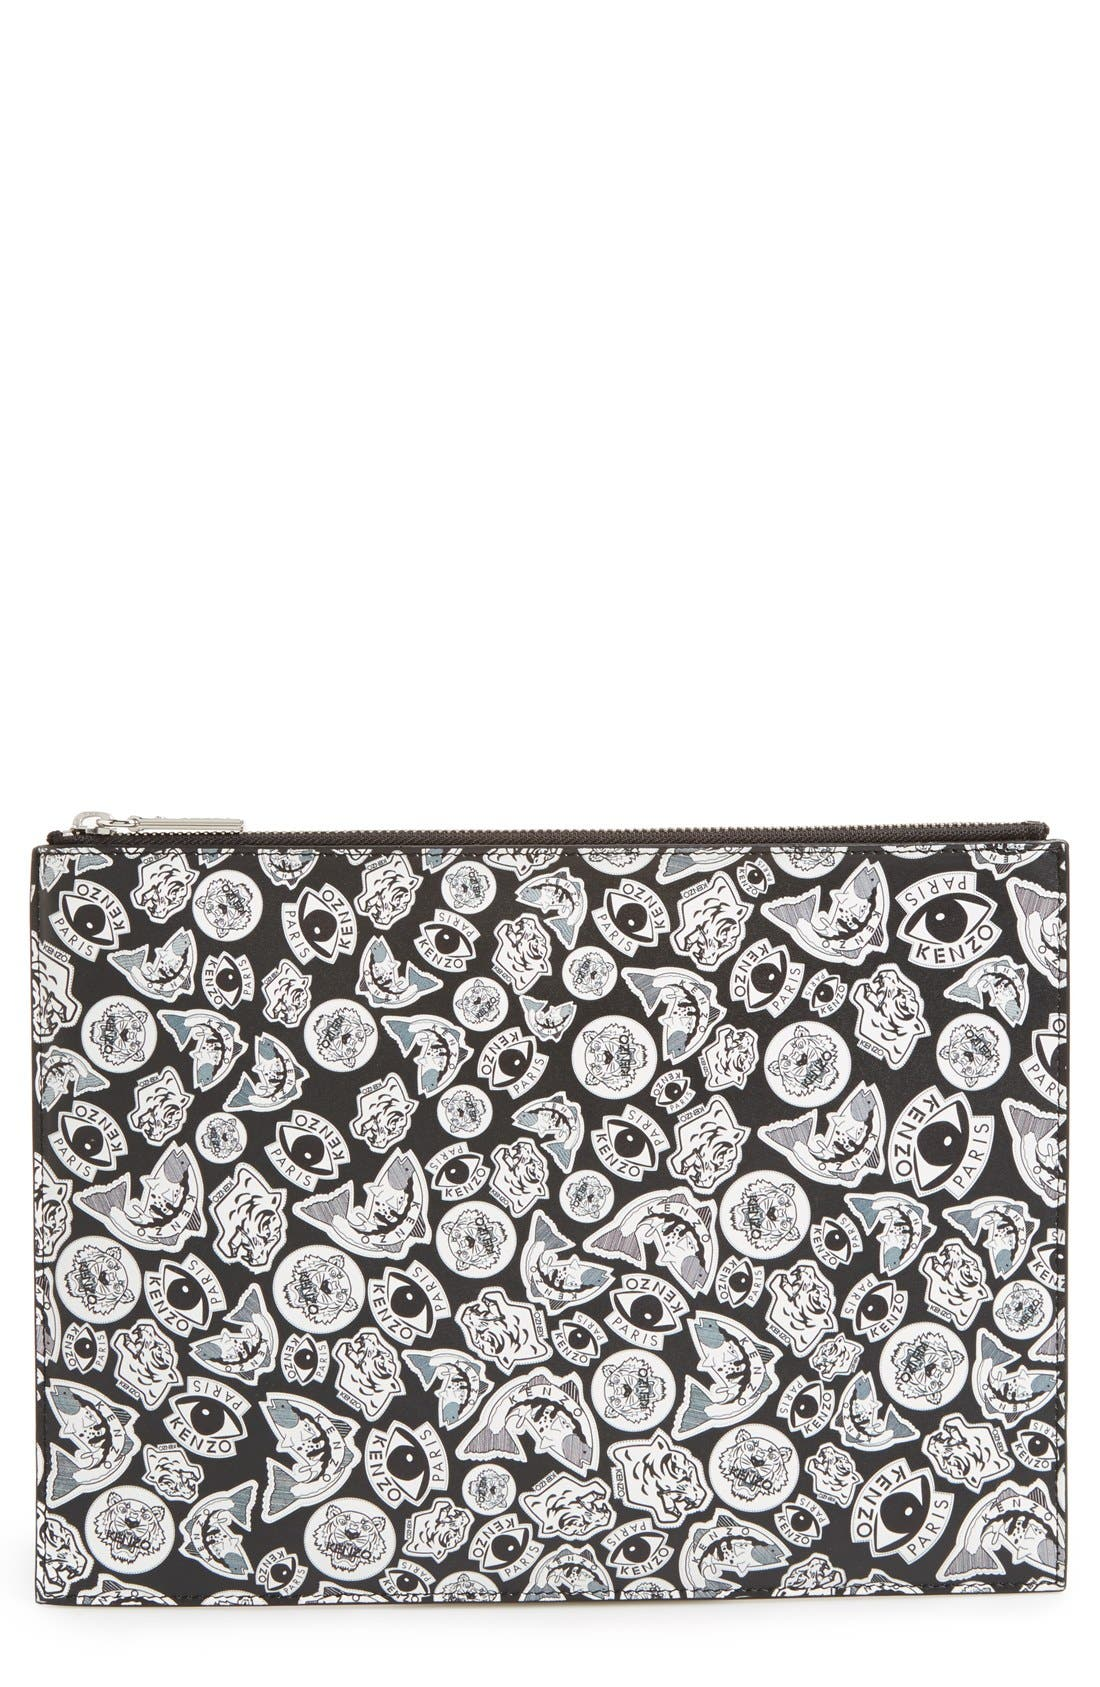 Alternate Image 1 Selected - KENZO Logo Clutch